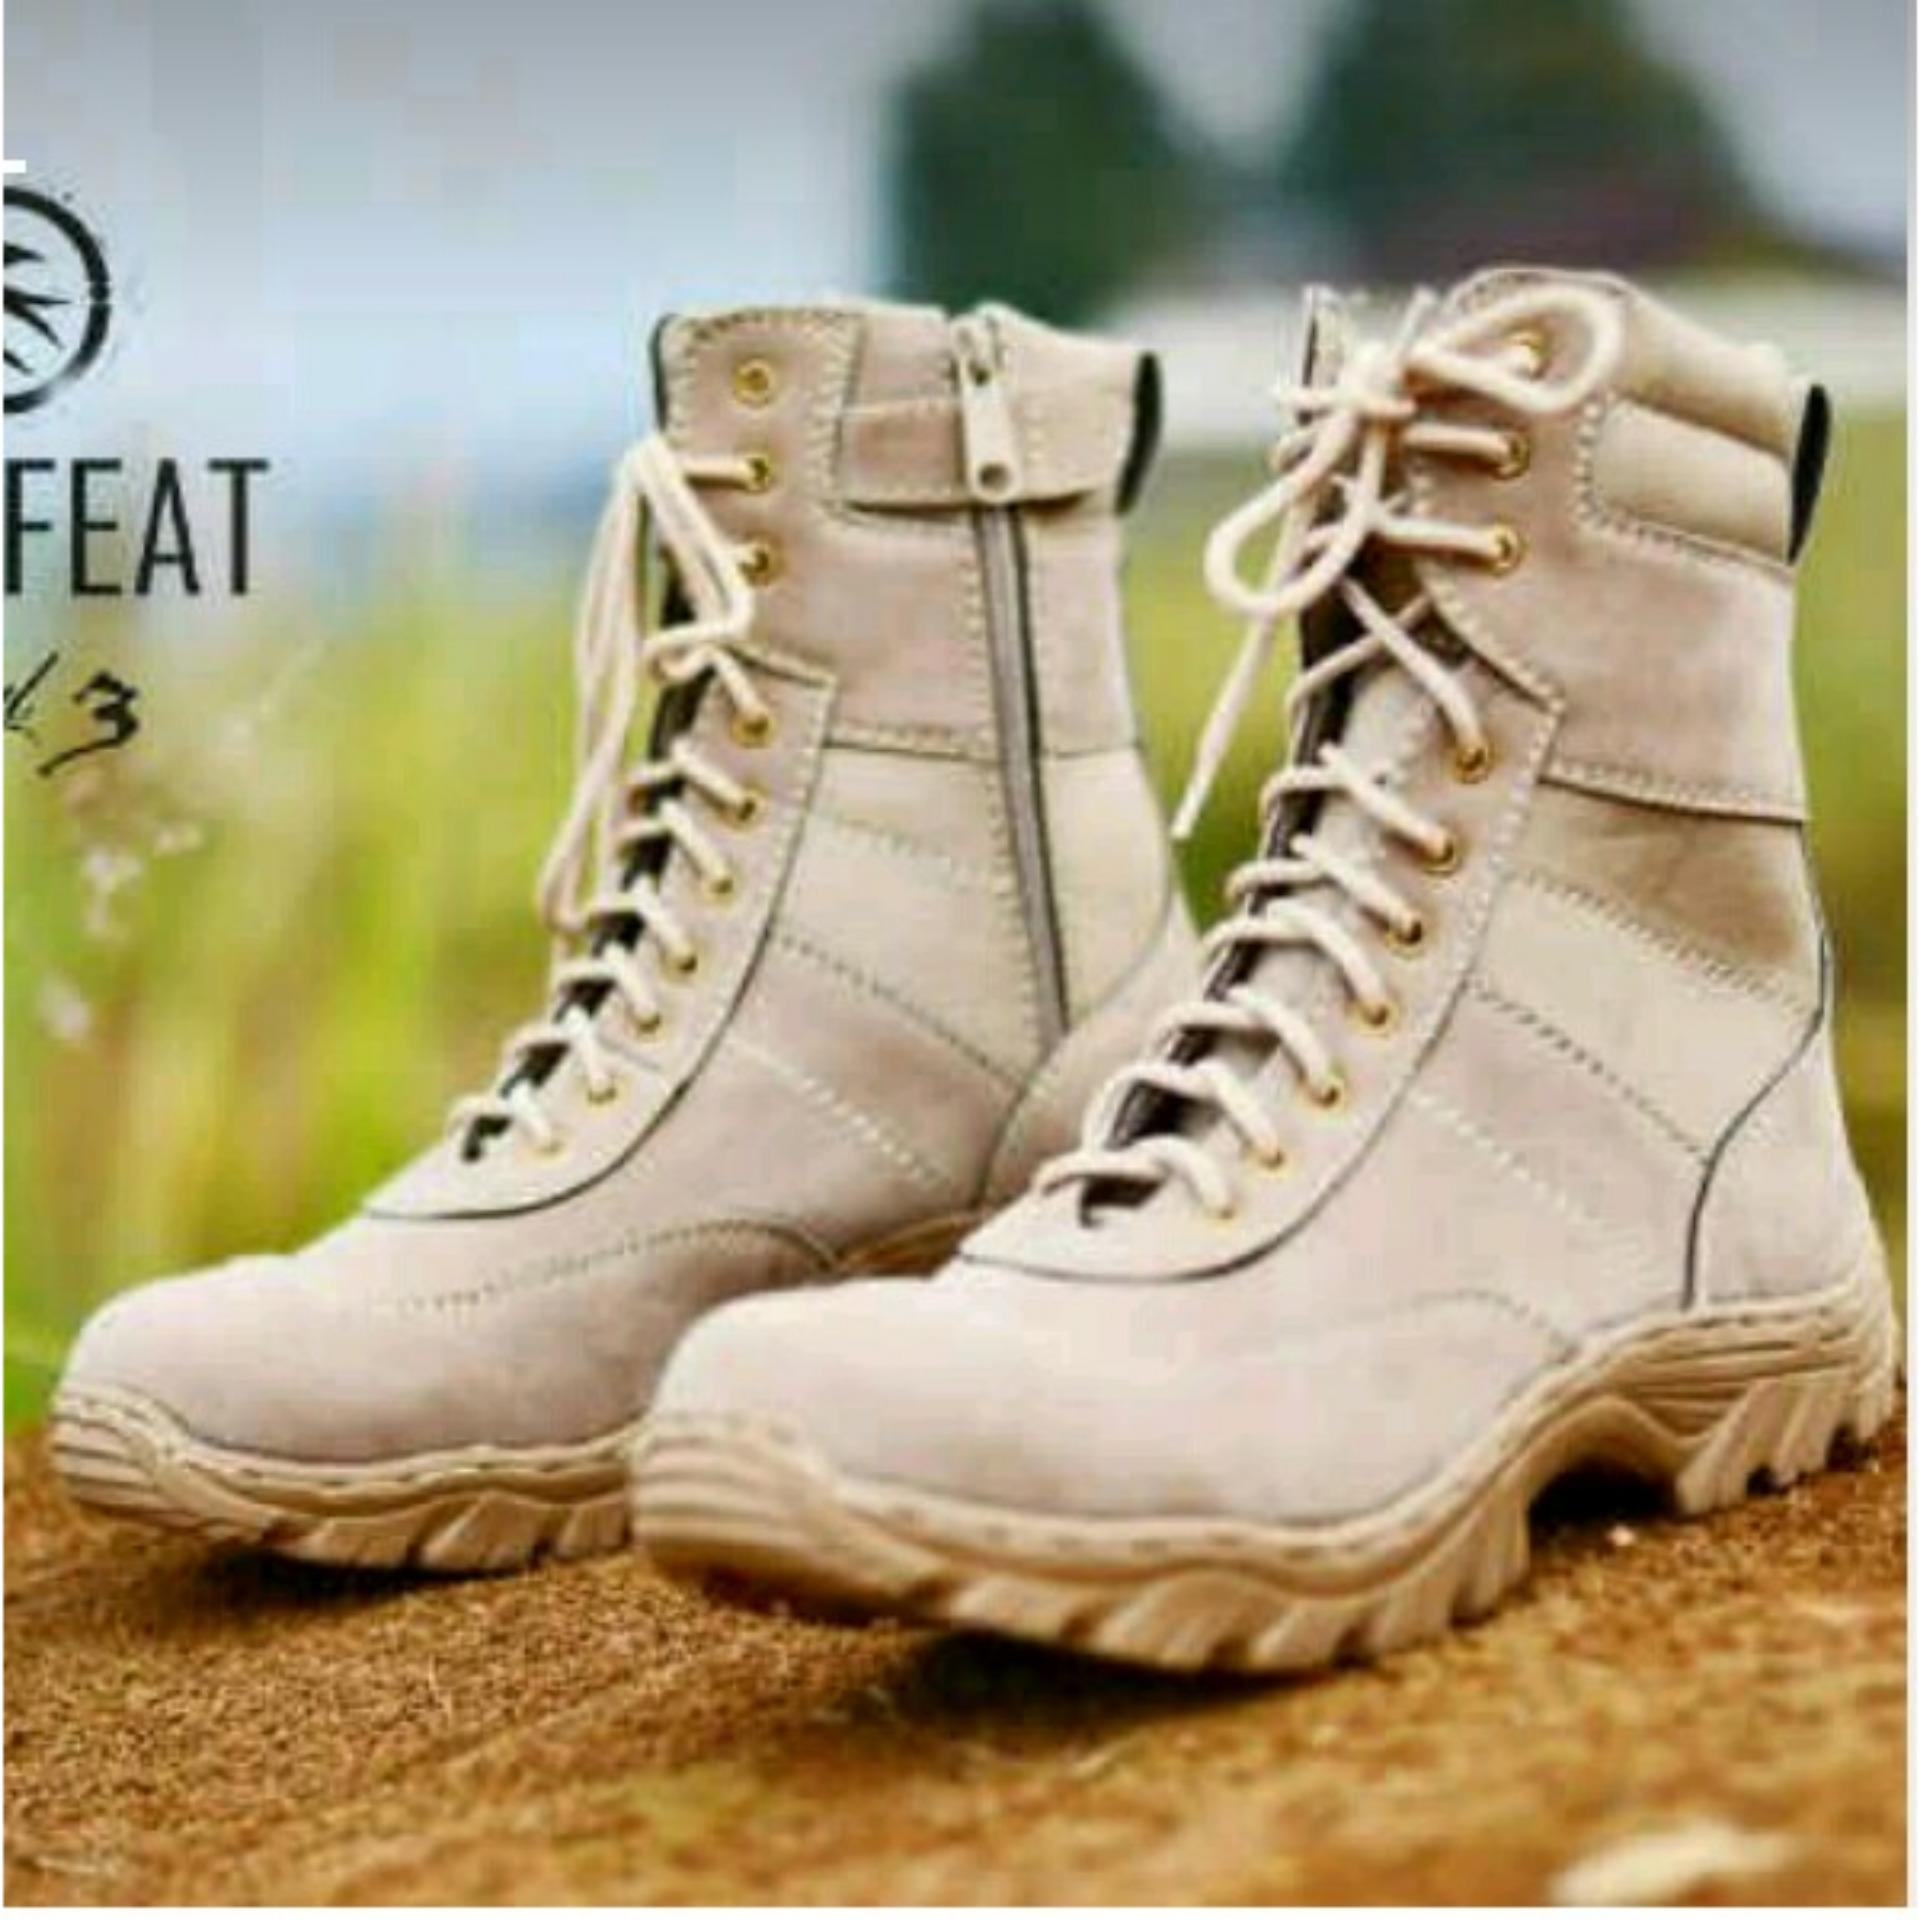 Dbest Sepatu Boot Hiking Delta High 8inch Quality Outdoor Gurun ... a1c38da051